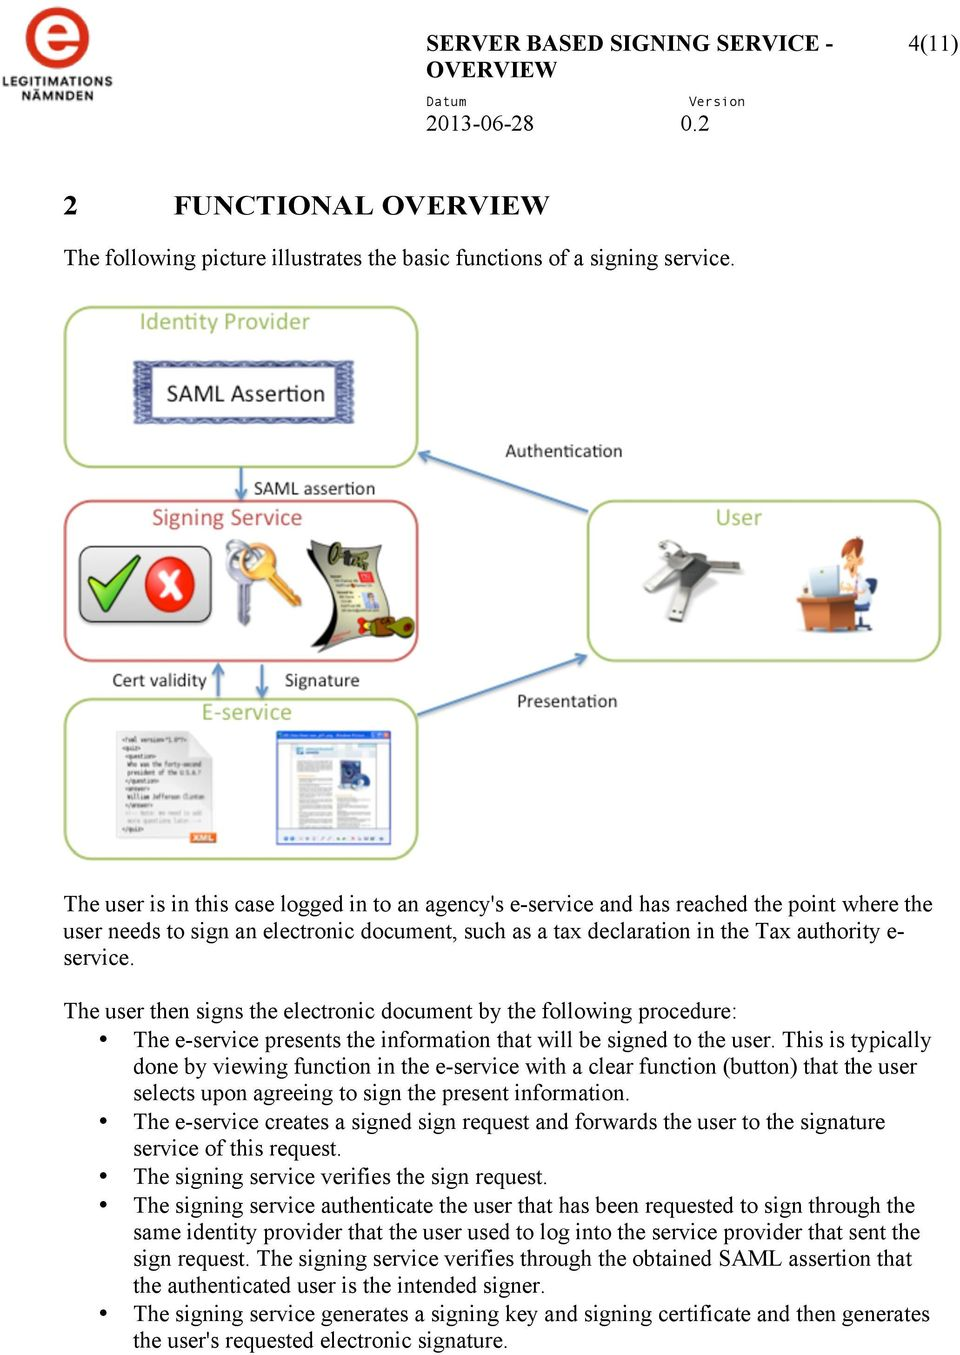 The user then signs the electronic document by the following procedure: The e-service presents the information that will be signed to the user.